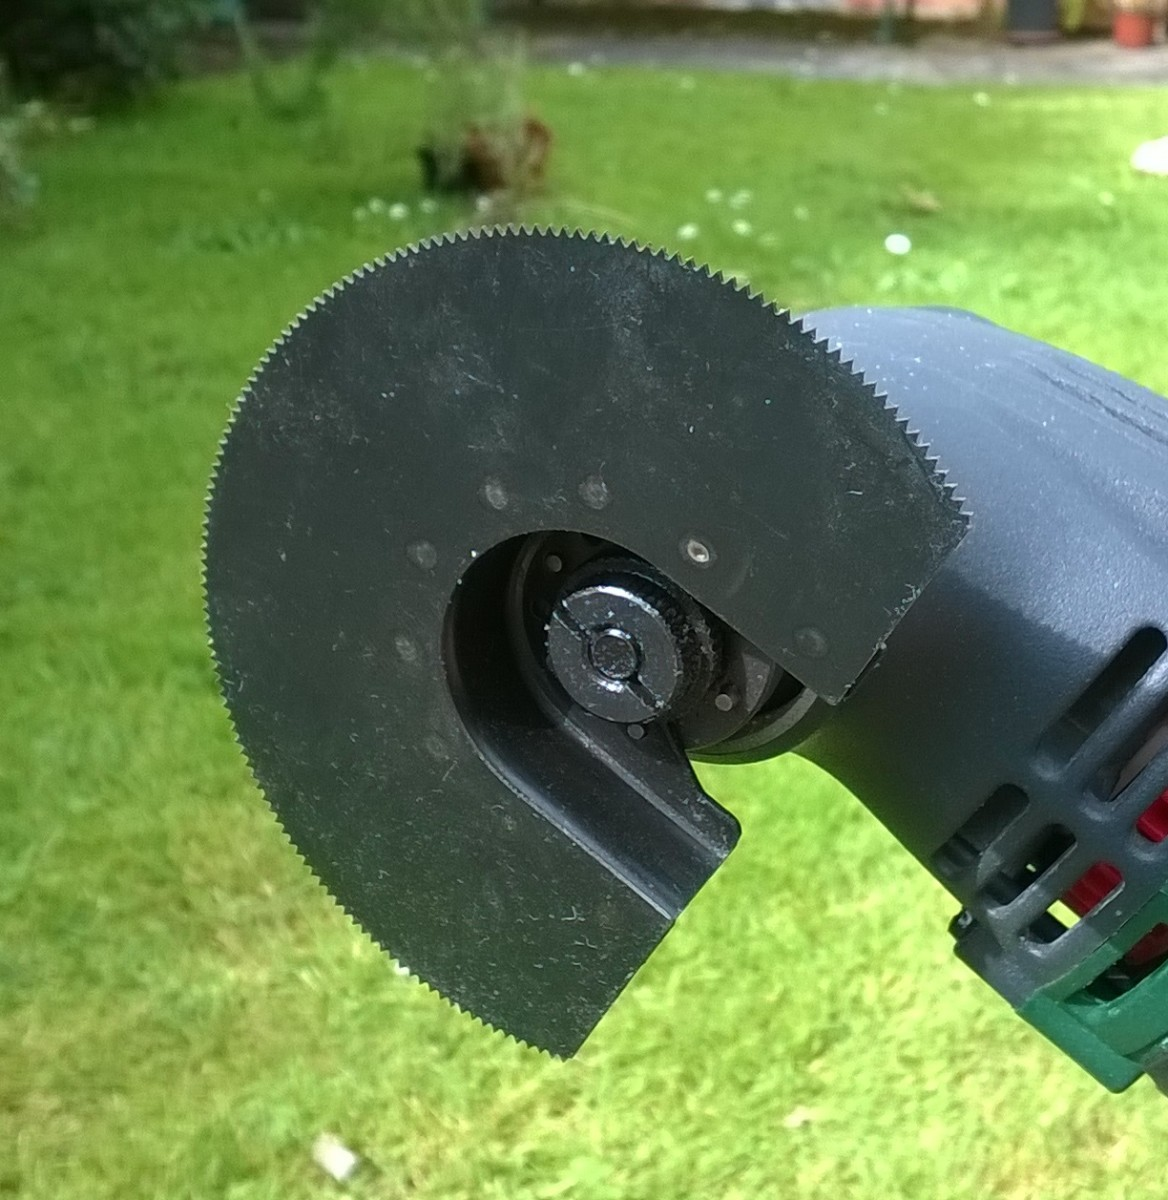 Segment blade for cutting at any angle, even right angles.